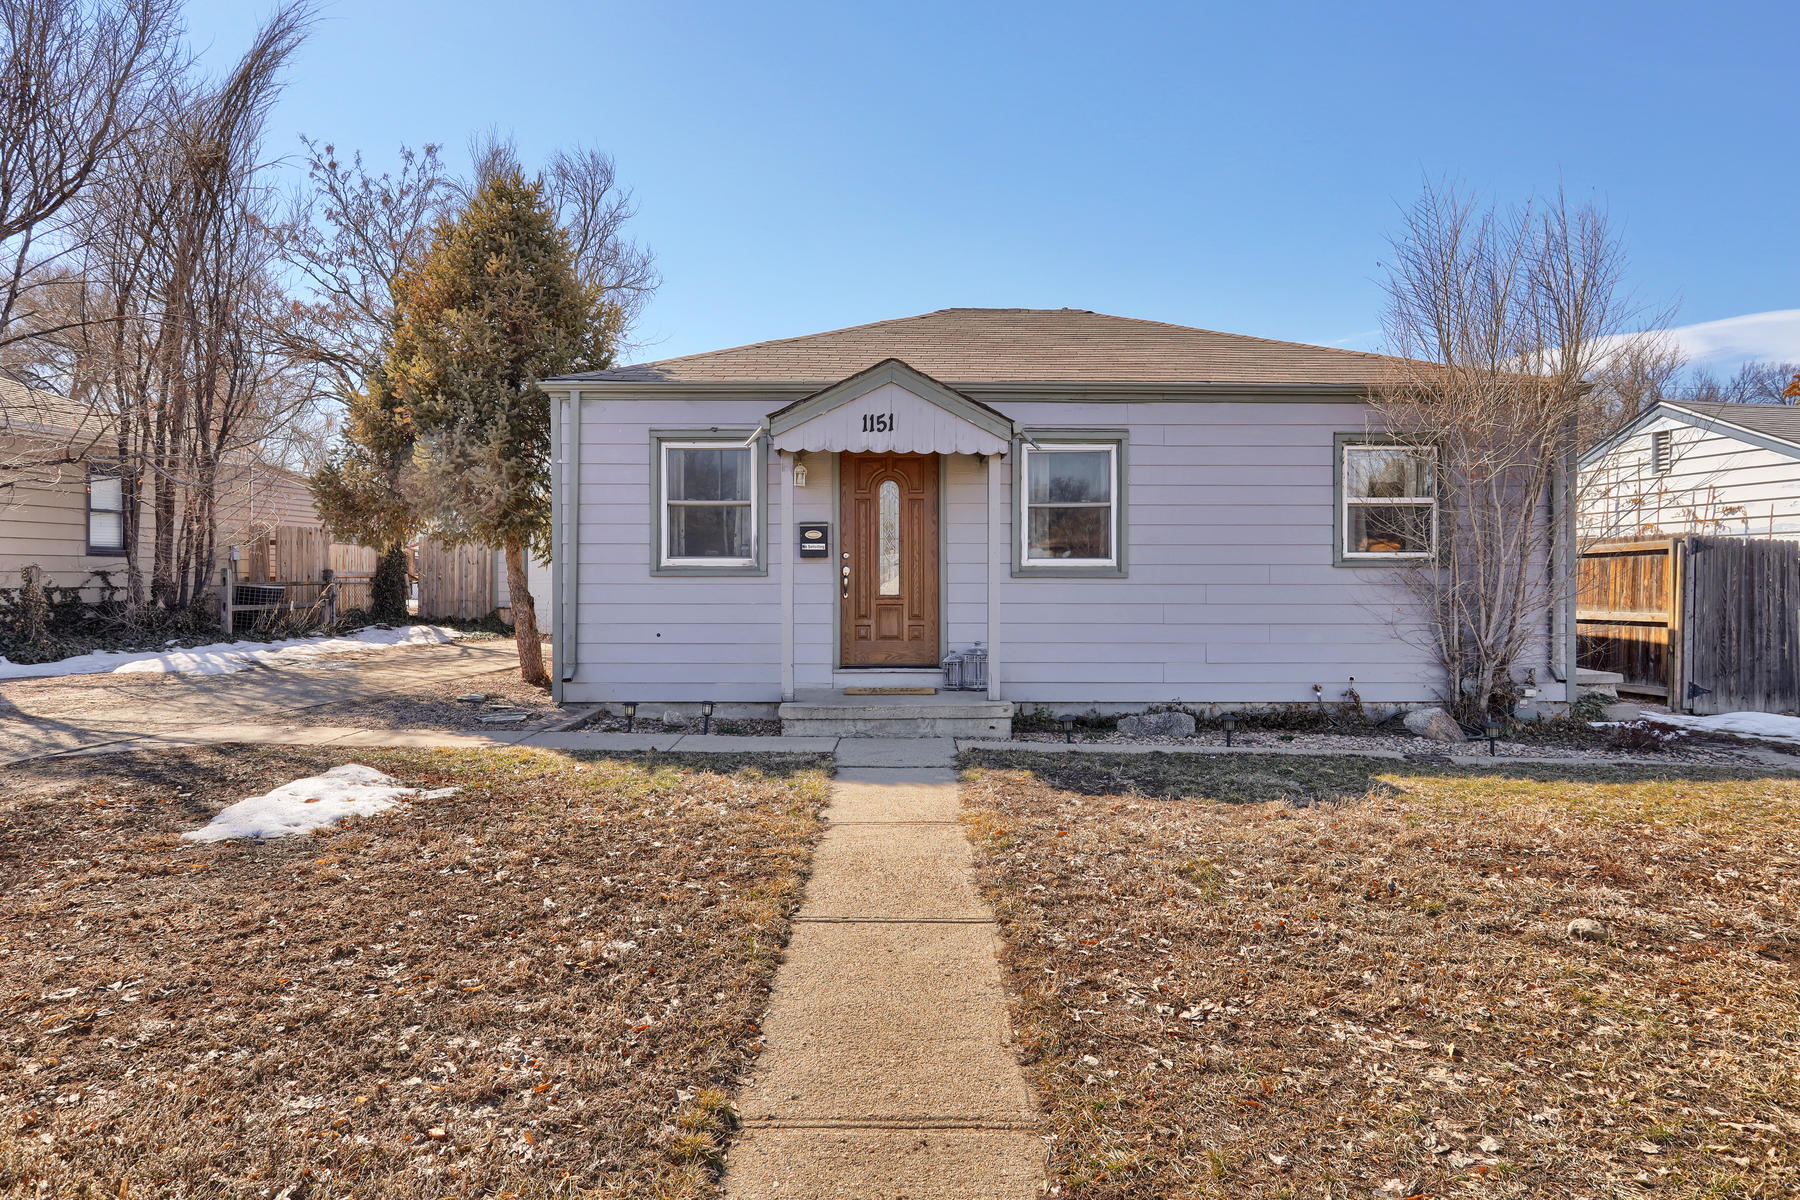 Single Family Homes のために 売買 アット Adorable, well cared for 2 Bedroom/ 1 Bathroom bungalow. 1151 Del Mar Parkway, Aurora, コロラド 80010 アメリカ